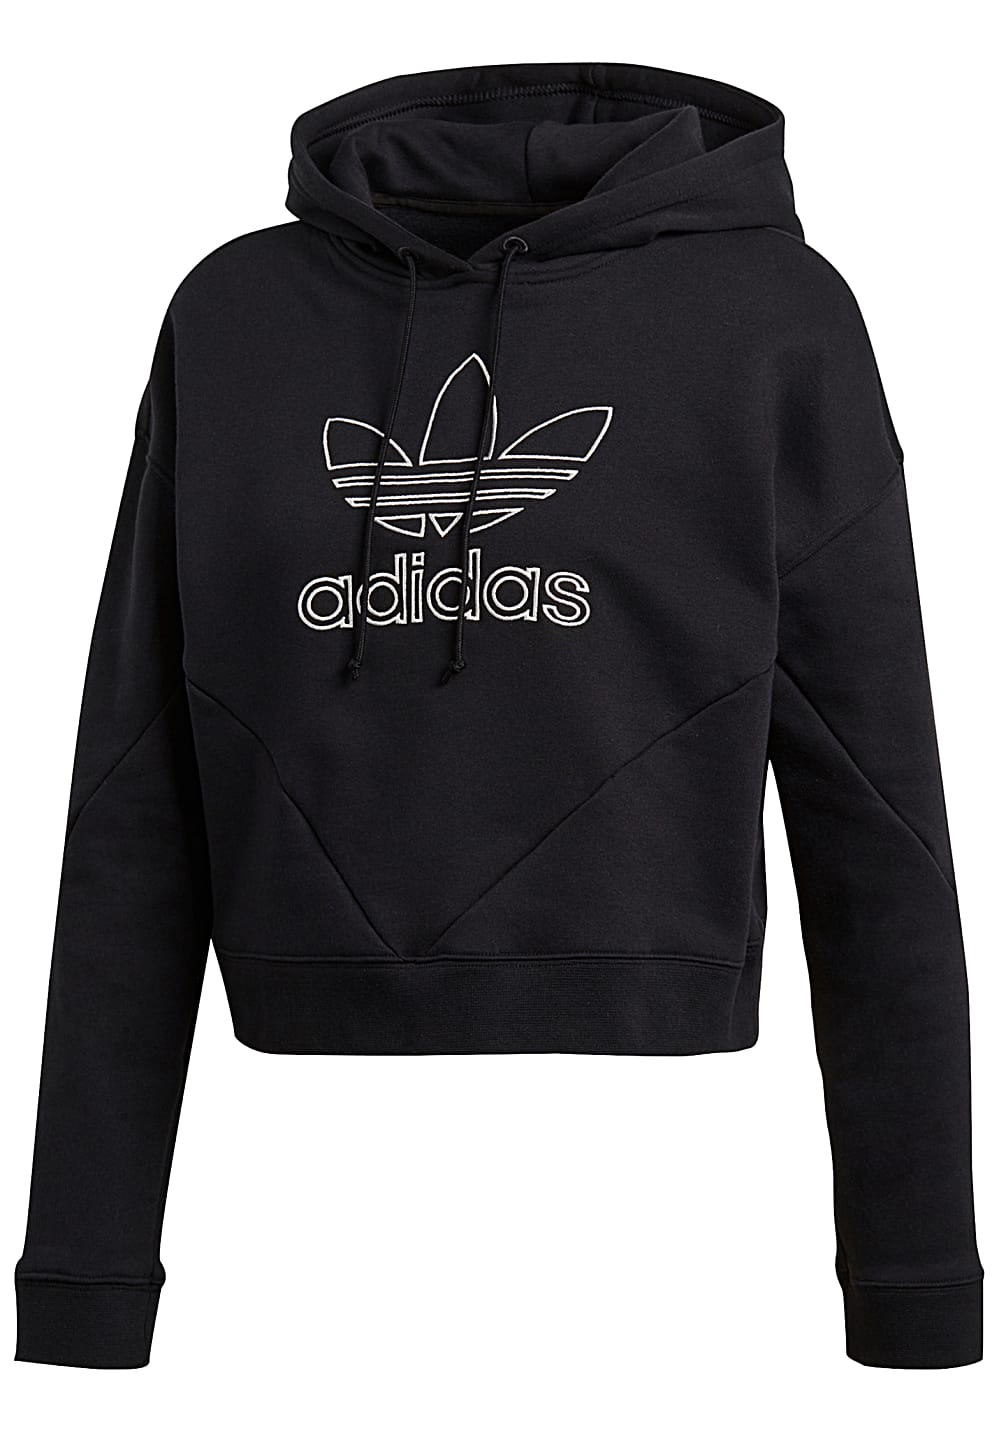 ADIDAS ORIGINALS Colorado - Sweat à capuche pour Femme - Noir